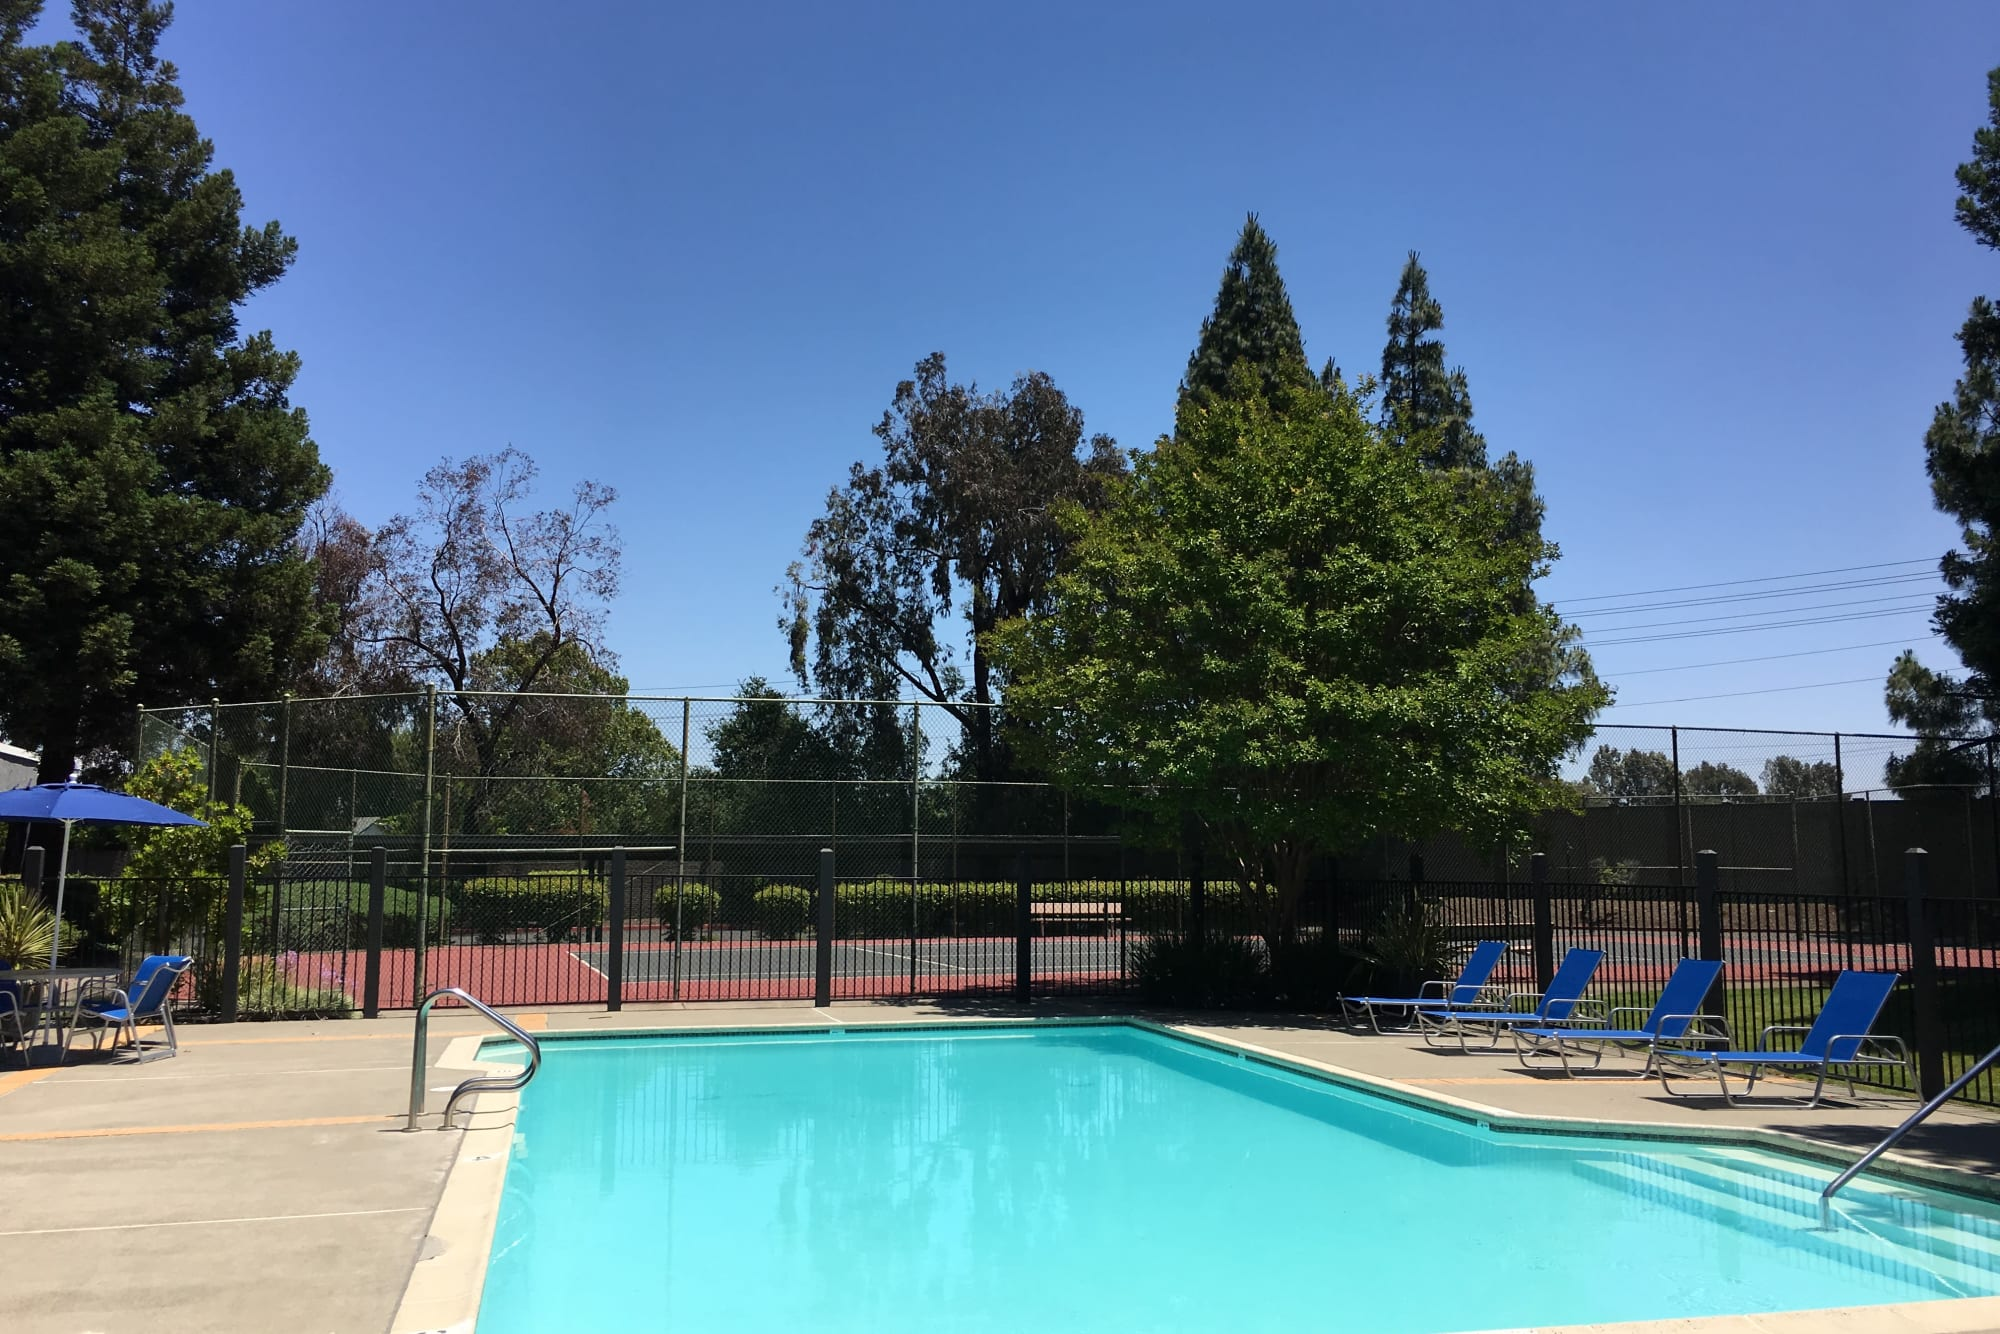 A gorgeous pool for hot summer days at Avery Park Apartments in Fairfield, California